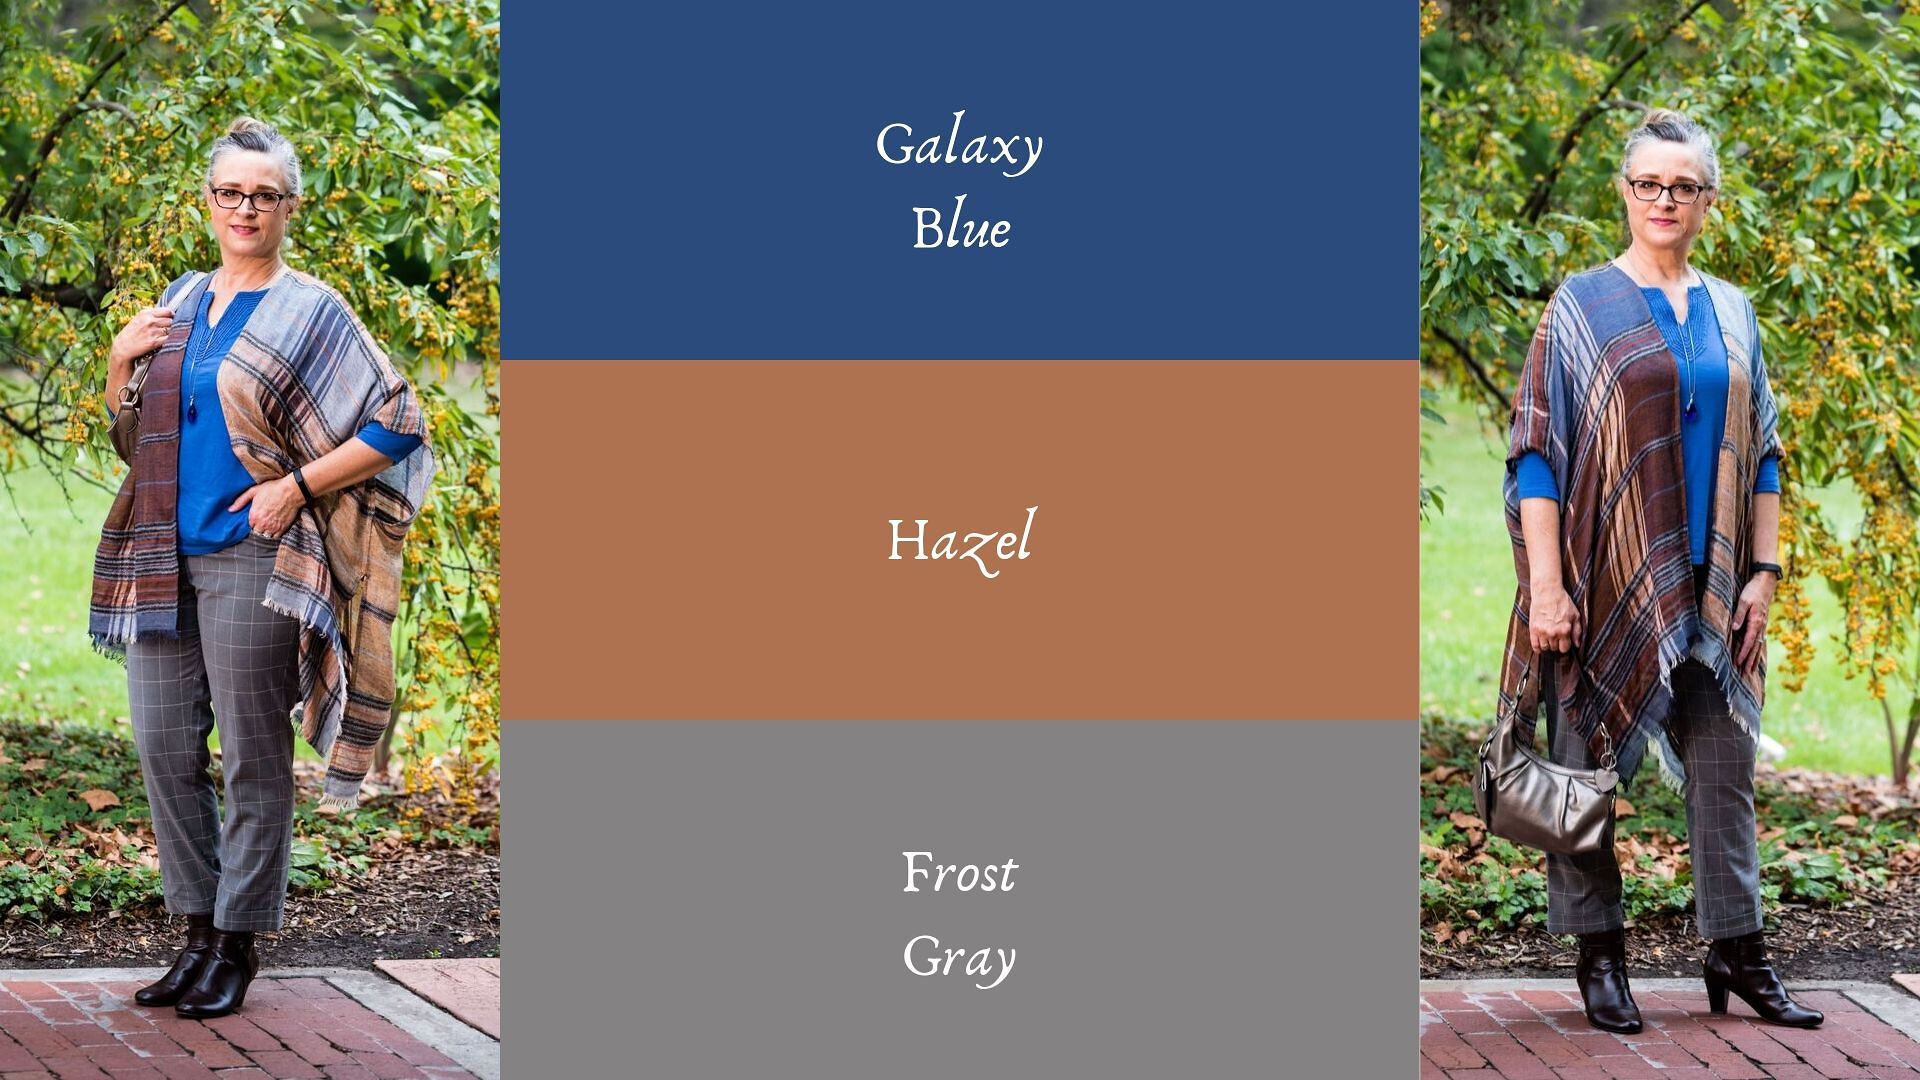 Pantone - Autumn/ Winter - 2019 - Galaxy Blue and Hazel